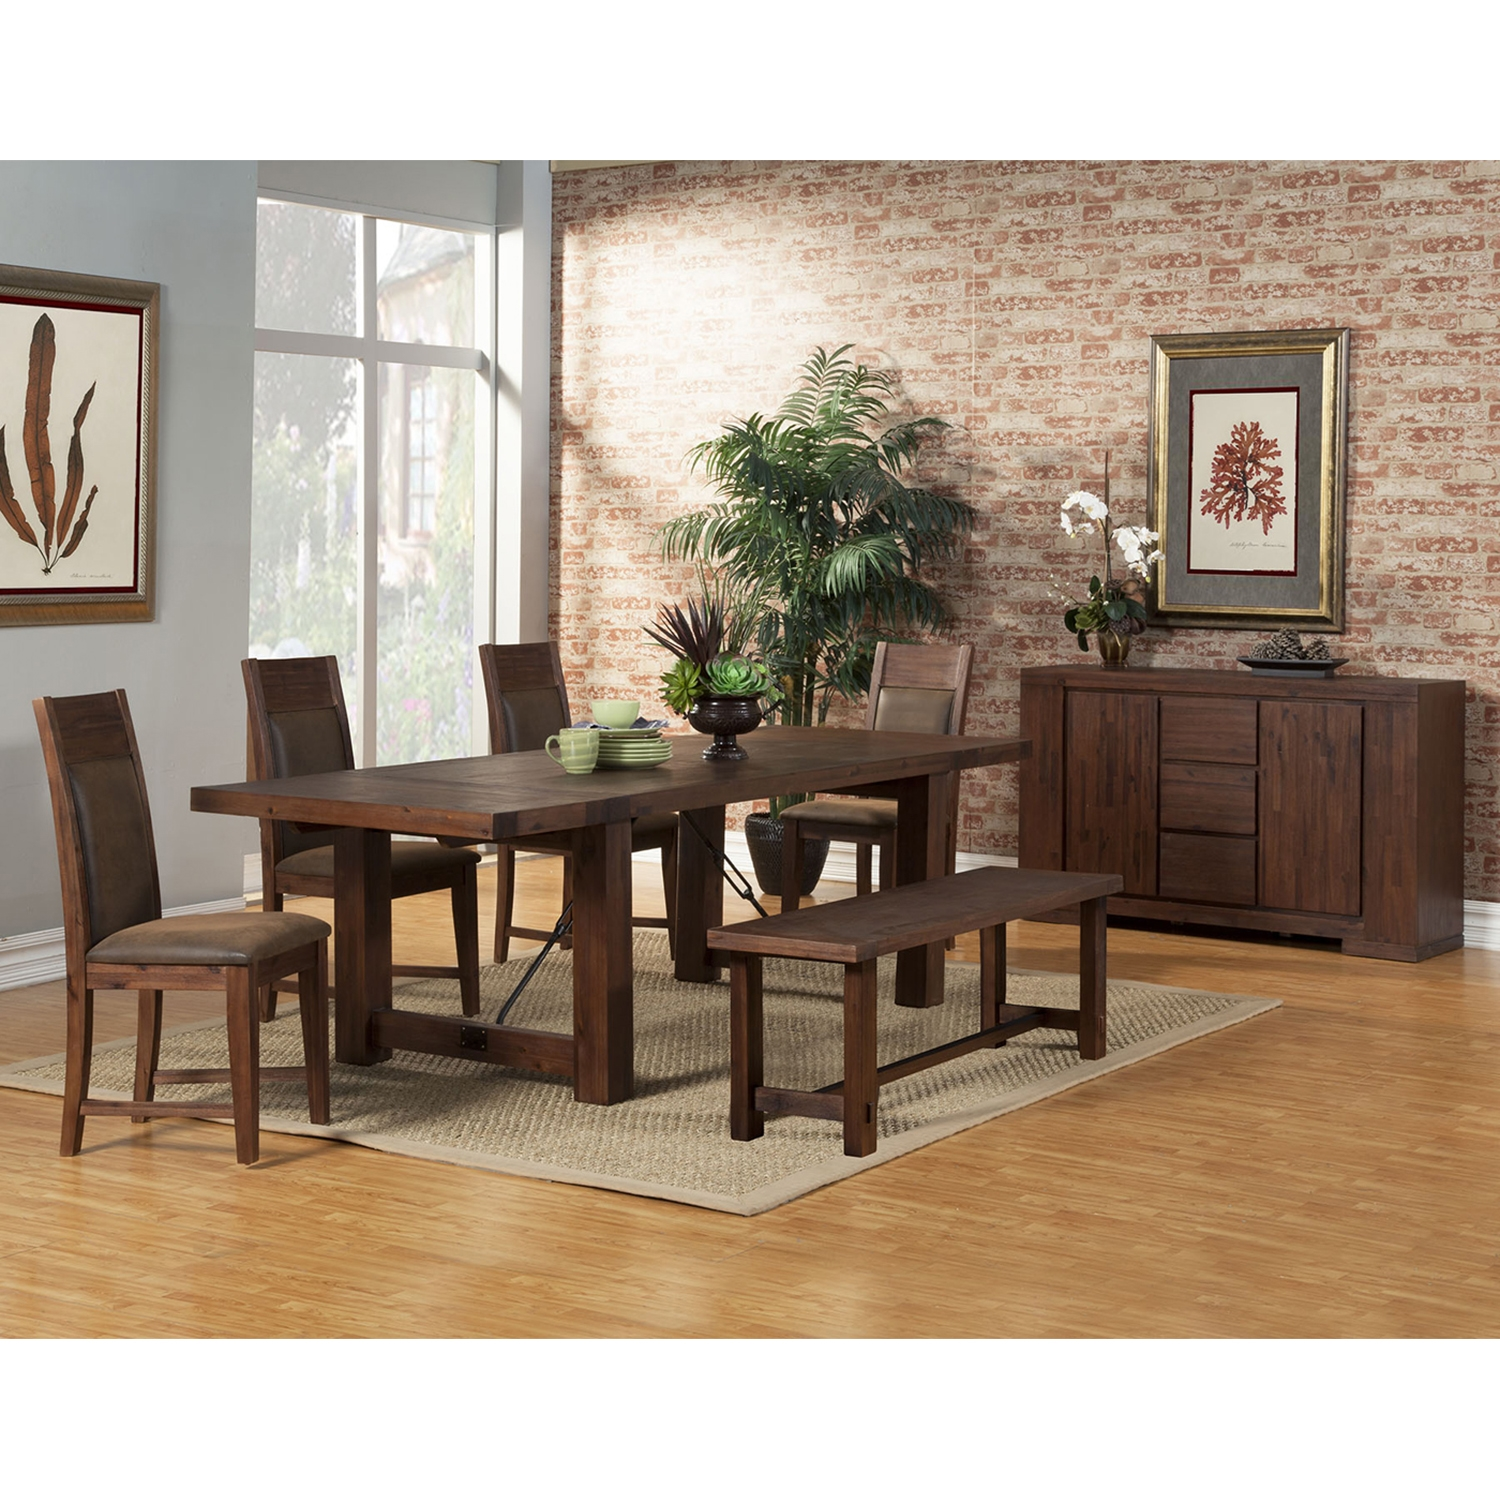 Pierre Dining Table - Antique Cappuccino, Dual Removable Leaves - ALP-8104-01